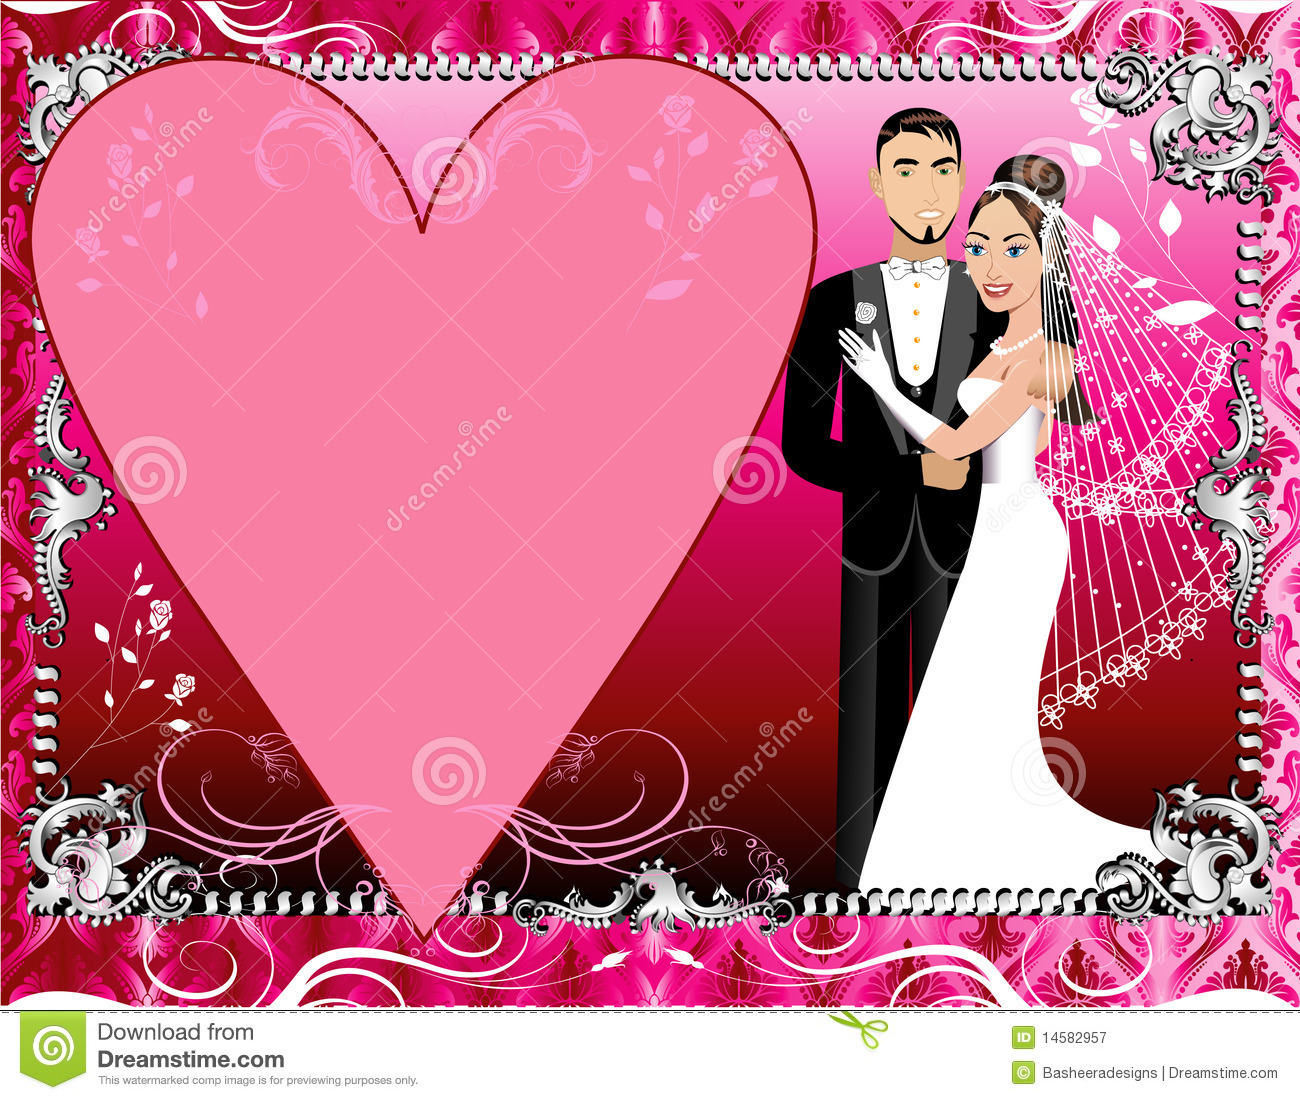 background beautiful bride couple groom illustration pink red silver template wedding